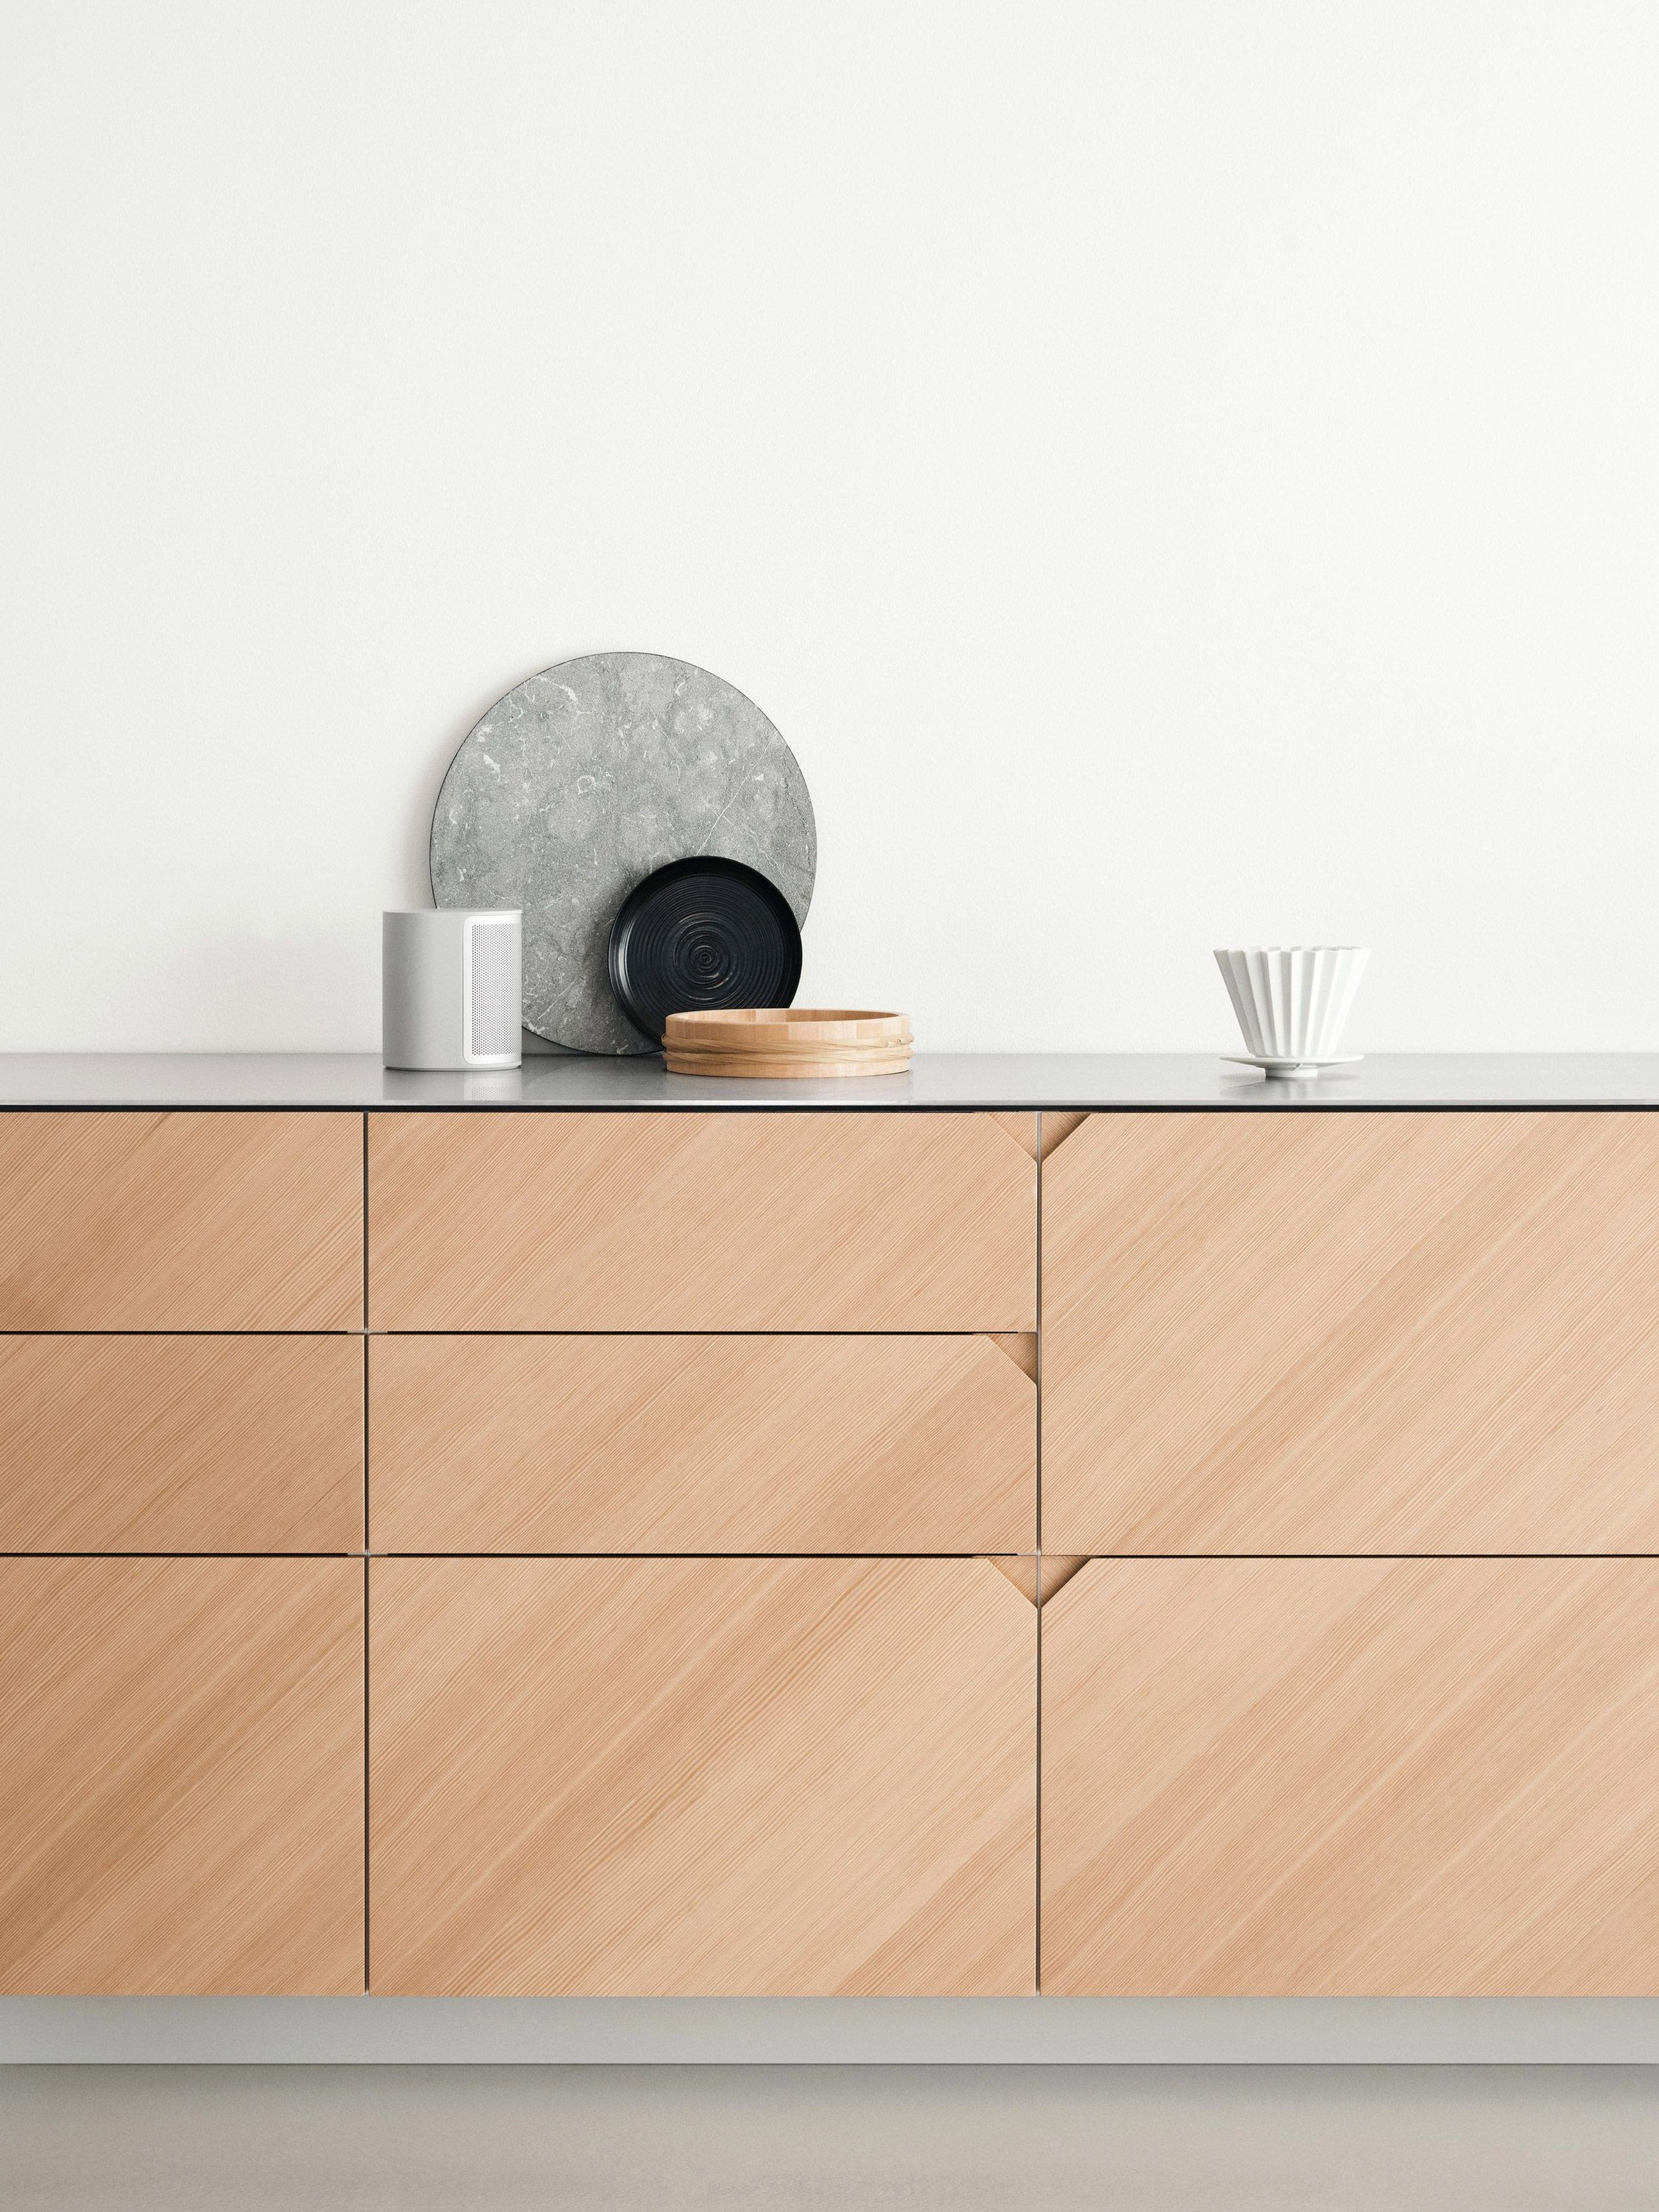 Is No Hardware The New Hardware Trend For Kitchens Kitchen Trends Kitchen Renovation Kitchen Design